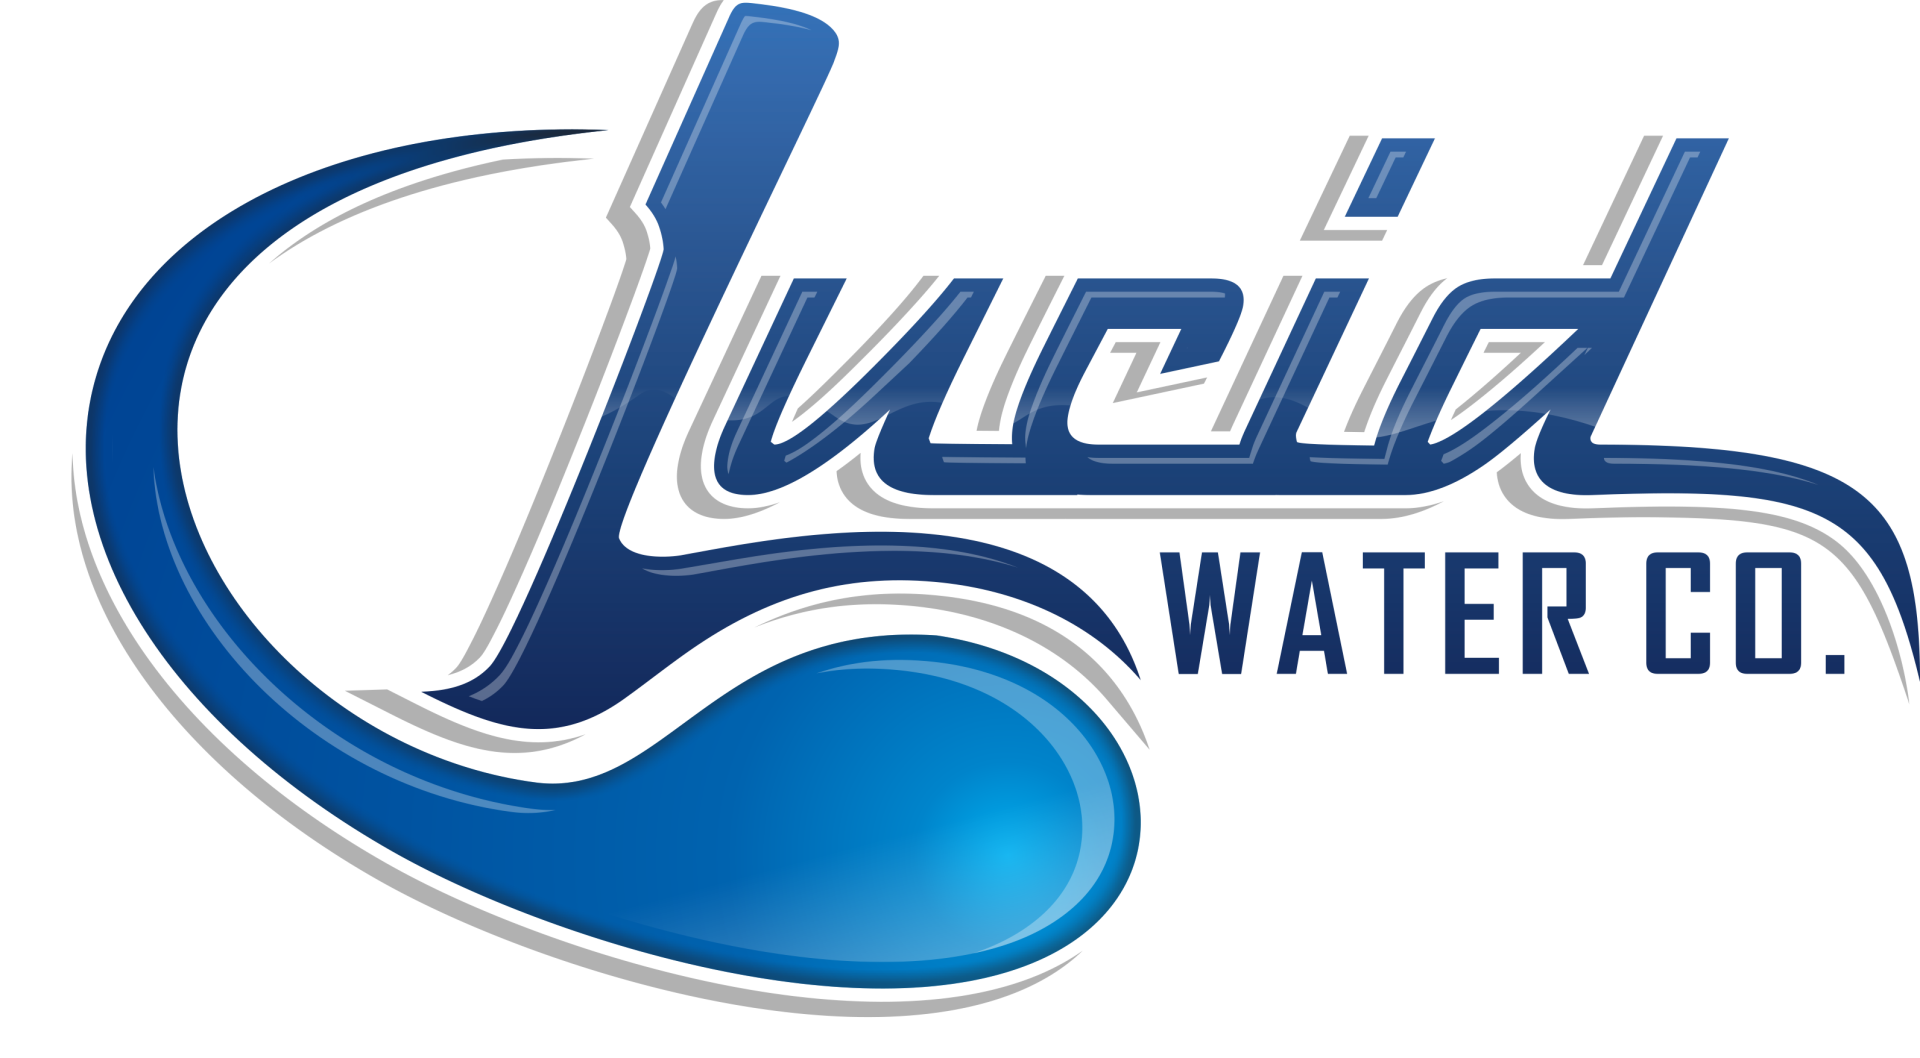 Lucid-Water-w1920.png